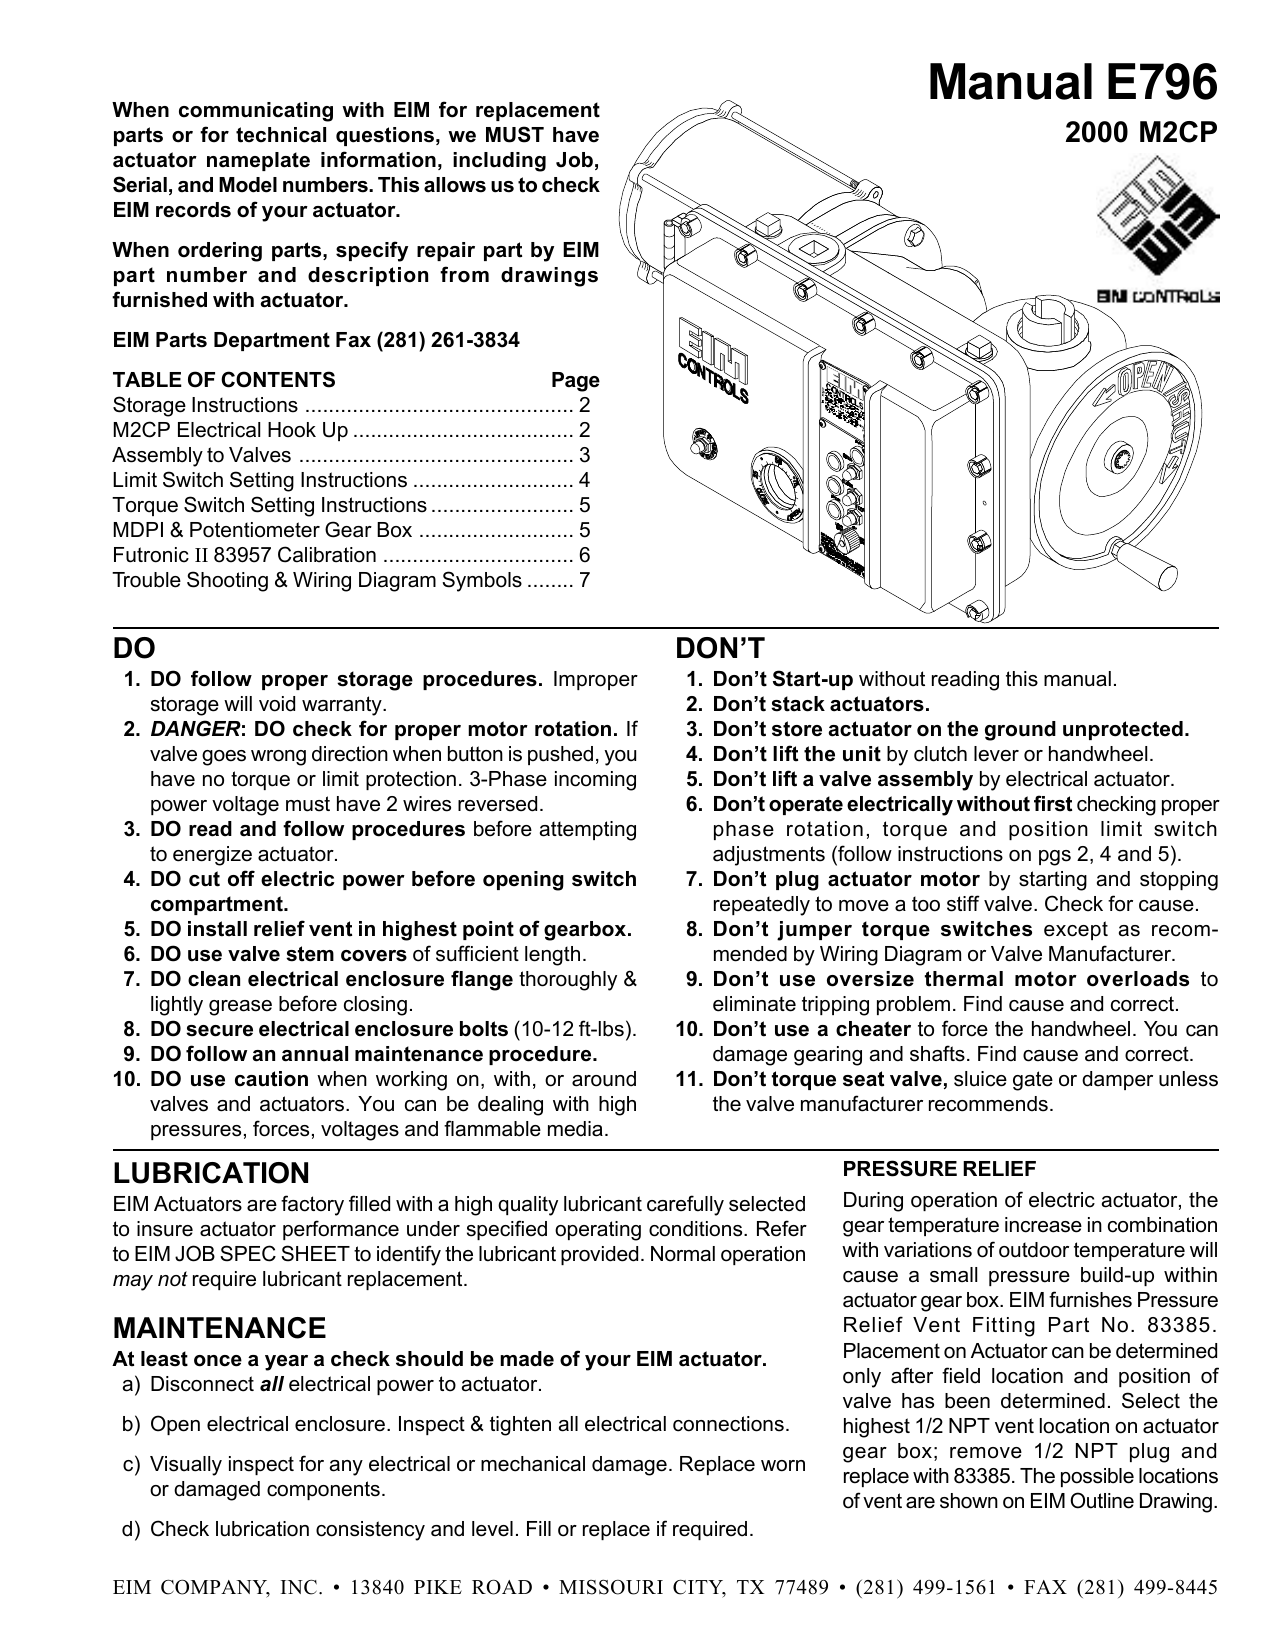 018642467_1 d6a38c79dbcedaa4a2705c4193dee3a5 series 2000 m2cp emerson process management eim m2cp actuator wiring diagram at crackthecode.co